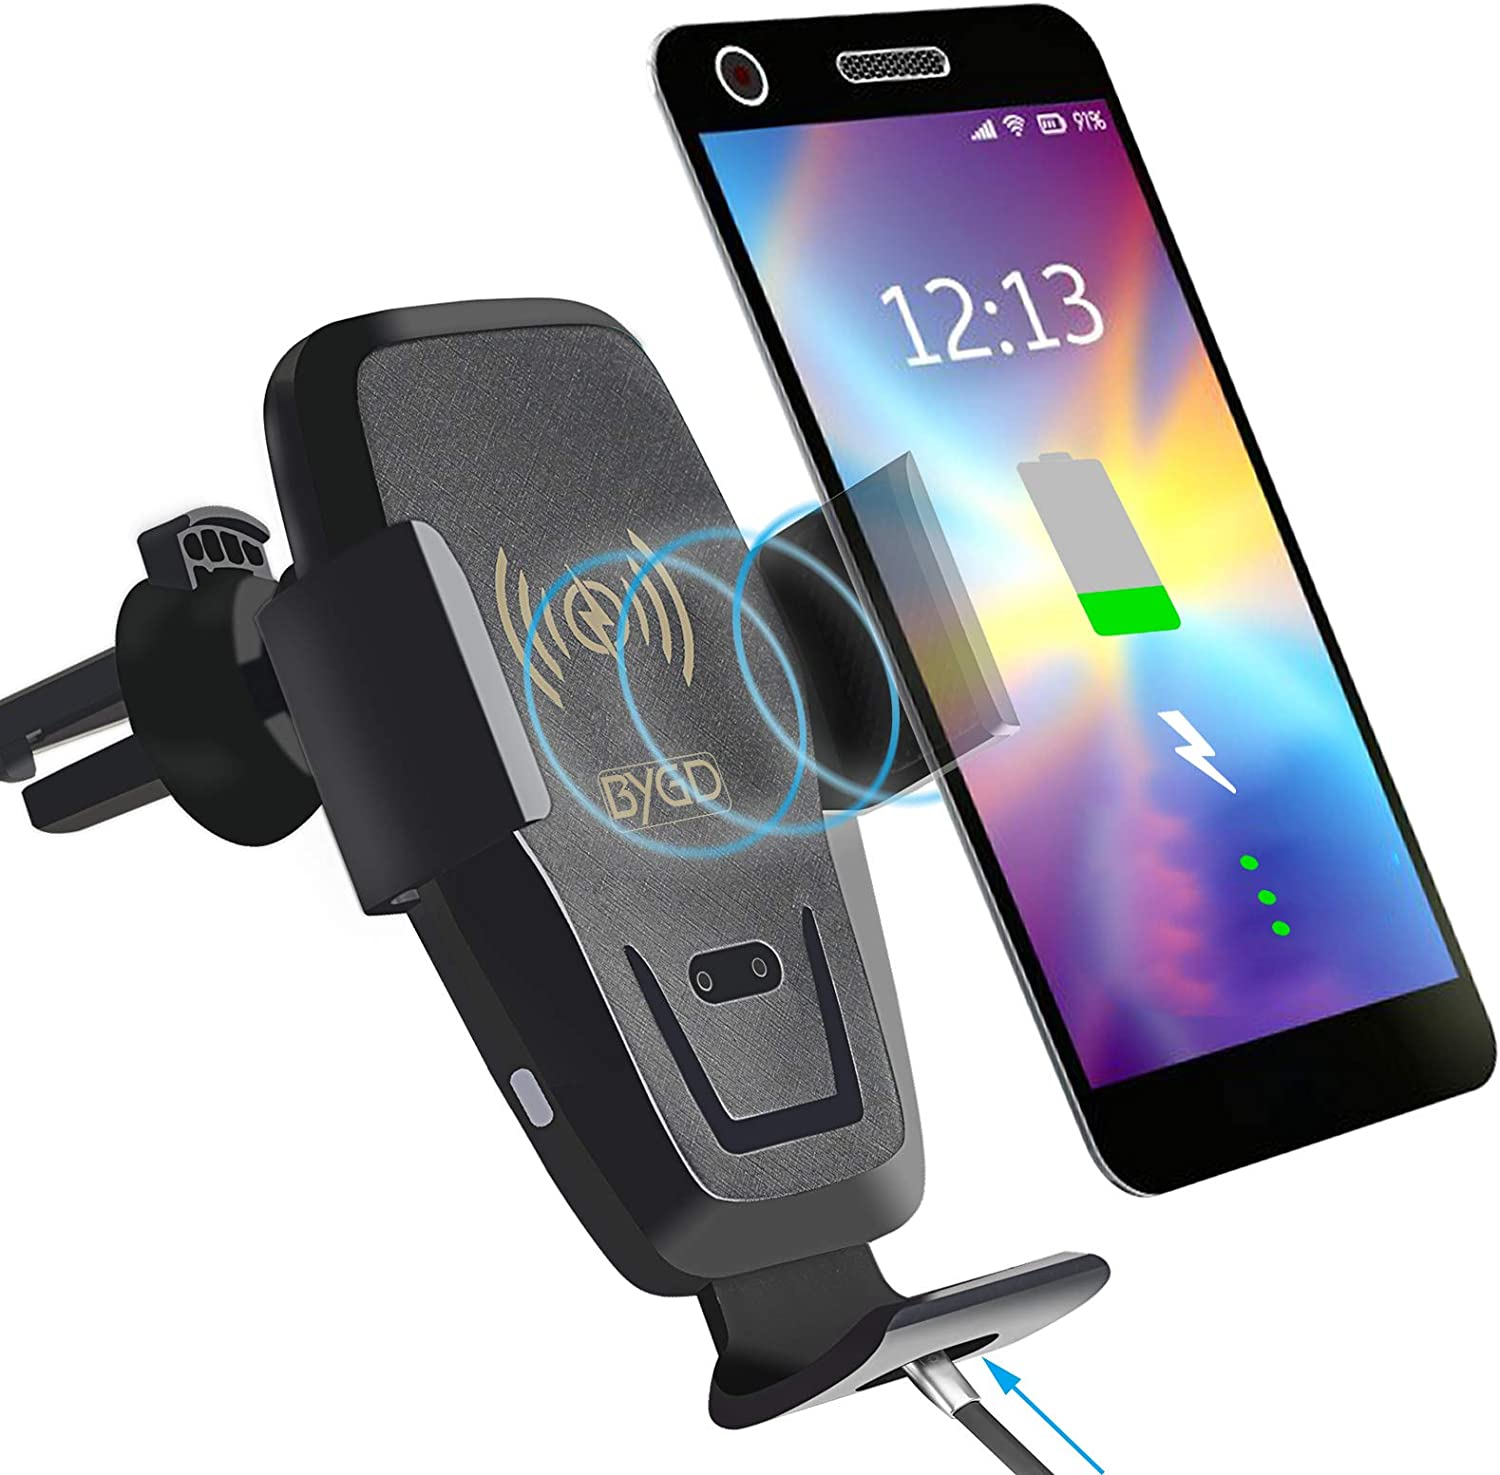 BYGD Wireless Car Charger Mount, 10W Qi Fast Charging Car Phone Holder Mount, Ventilation Hole Car Cell Phone Holder, Compatible with iPhone 11/11 Pro/11 Pro Max/8 Plus, Samsung S6/S6 Edge/S7